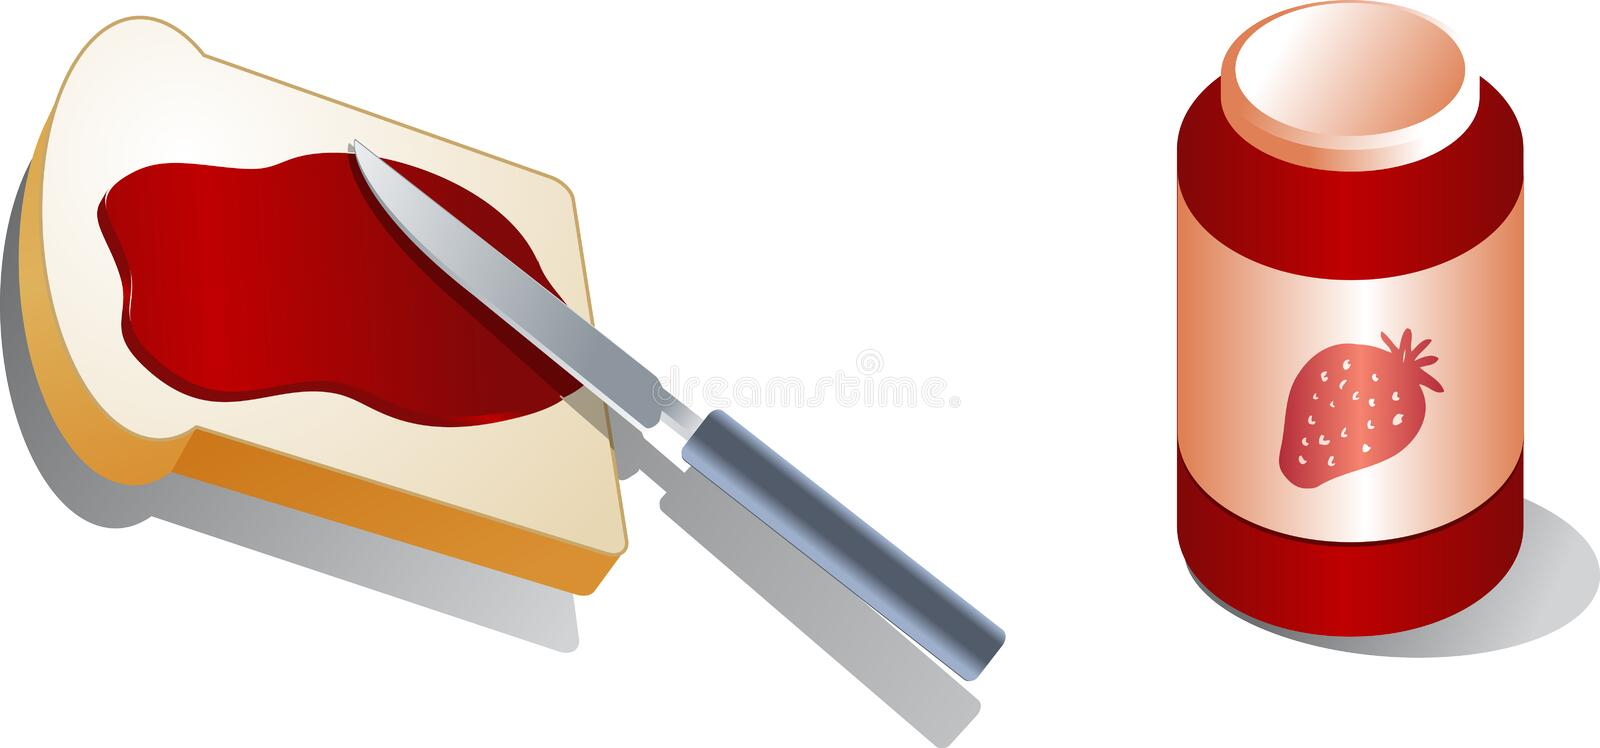 Bread with spread royalty free illustration